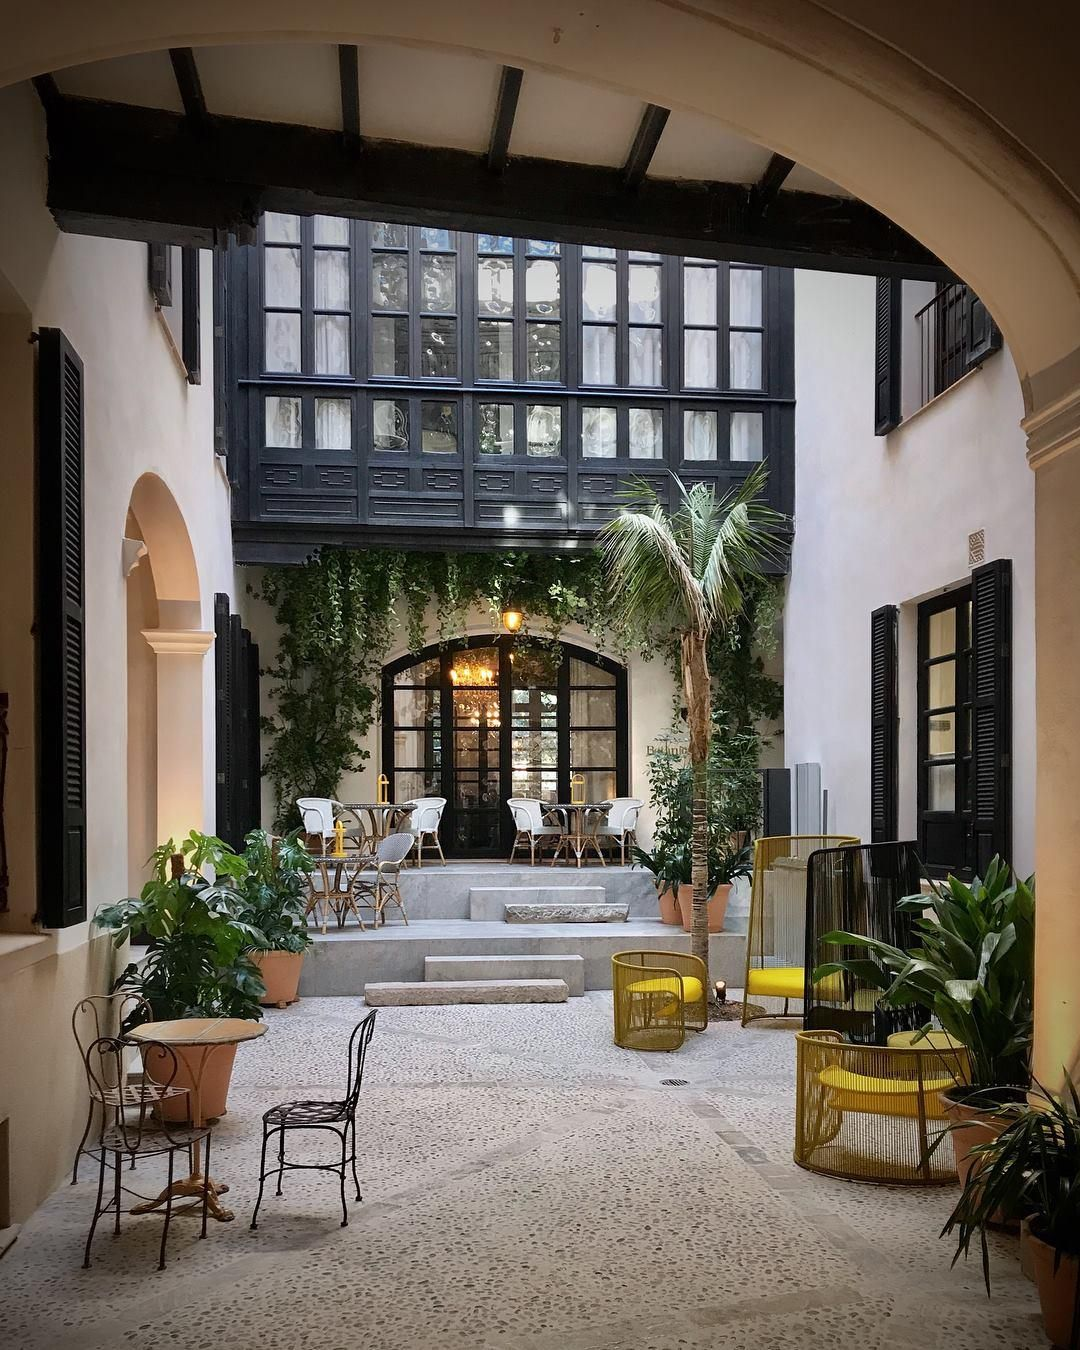 2019's Hottest New Hotel Openings Across The Globe